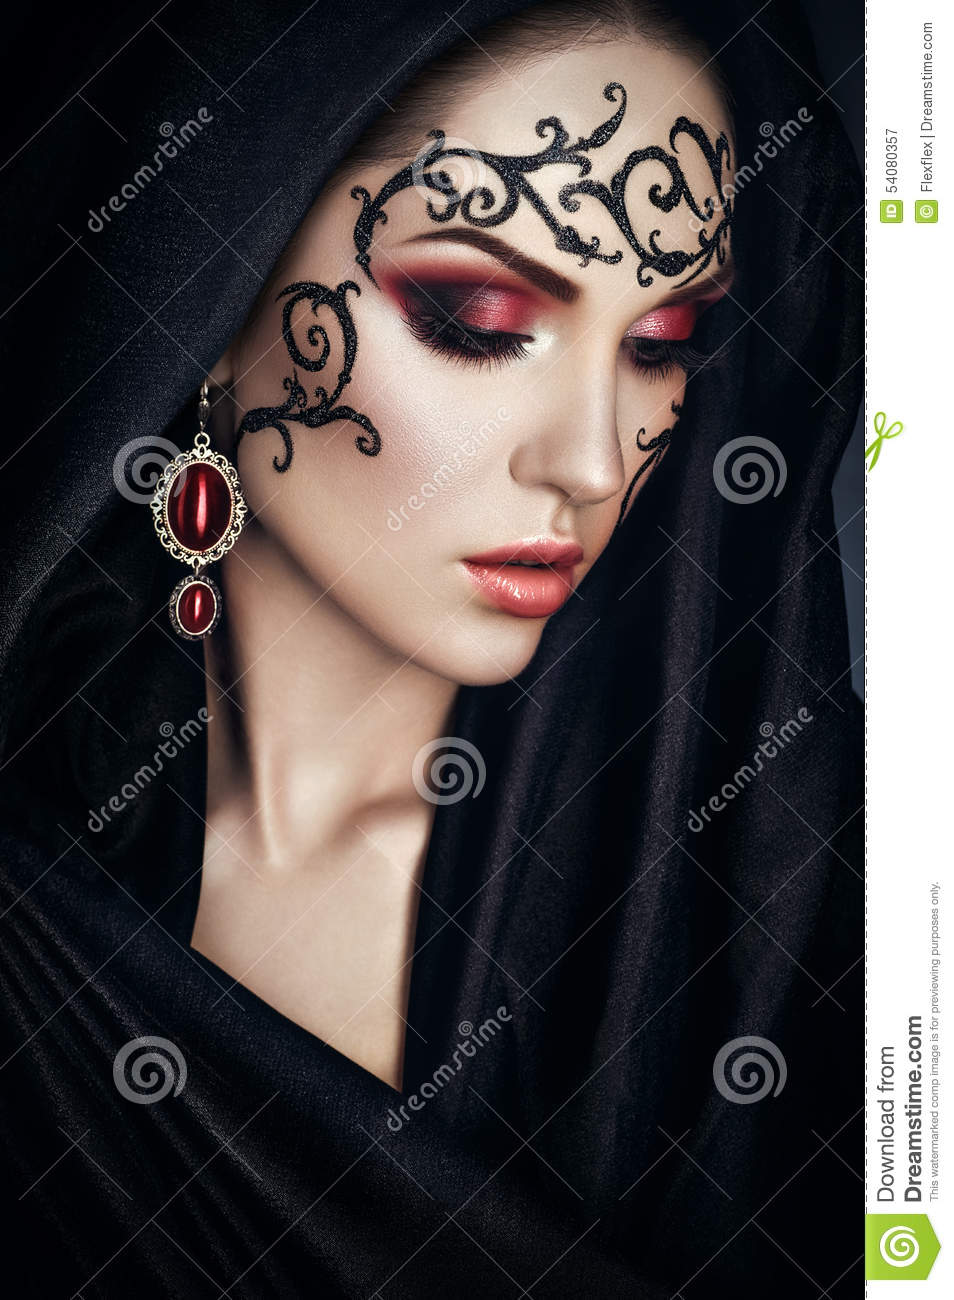 Beautiful Model With Lace Face-art Stock Photo - Image: 54080357